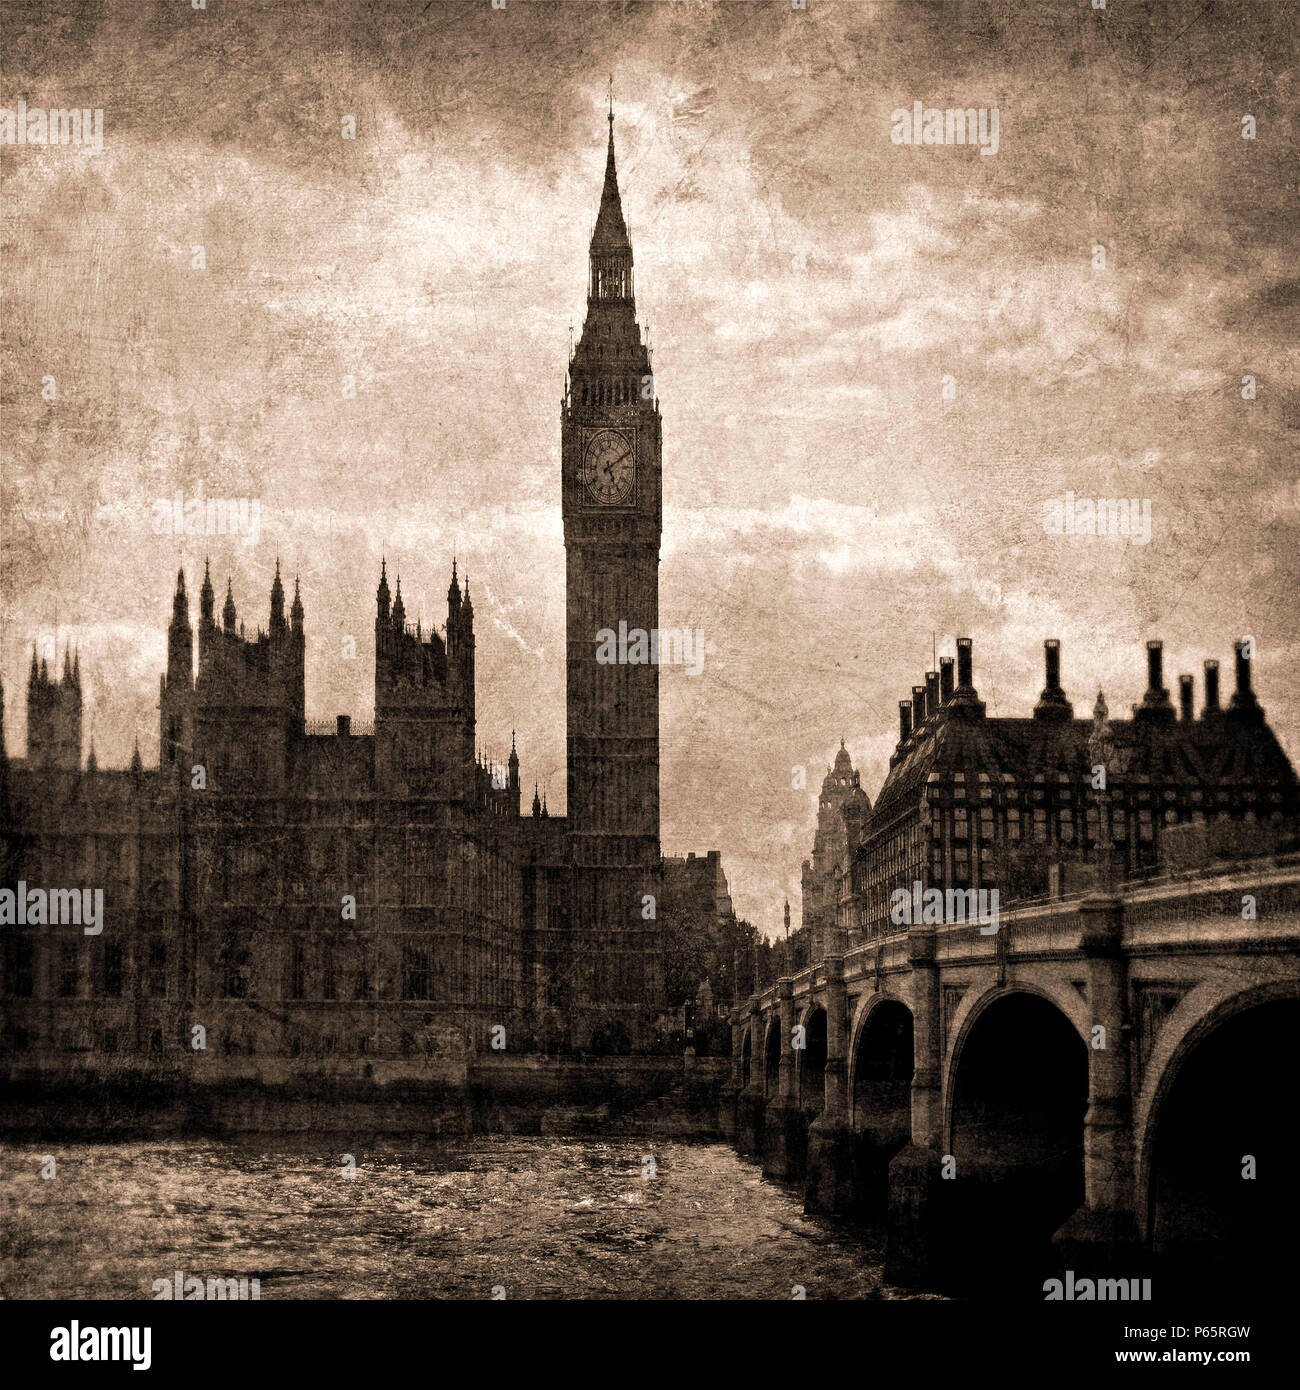 Big Ben and Westminster in Sepia Tones, London, UK - Stock Image